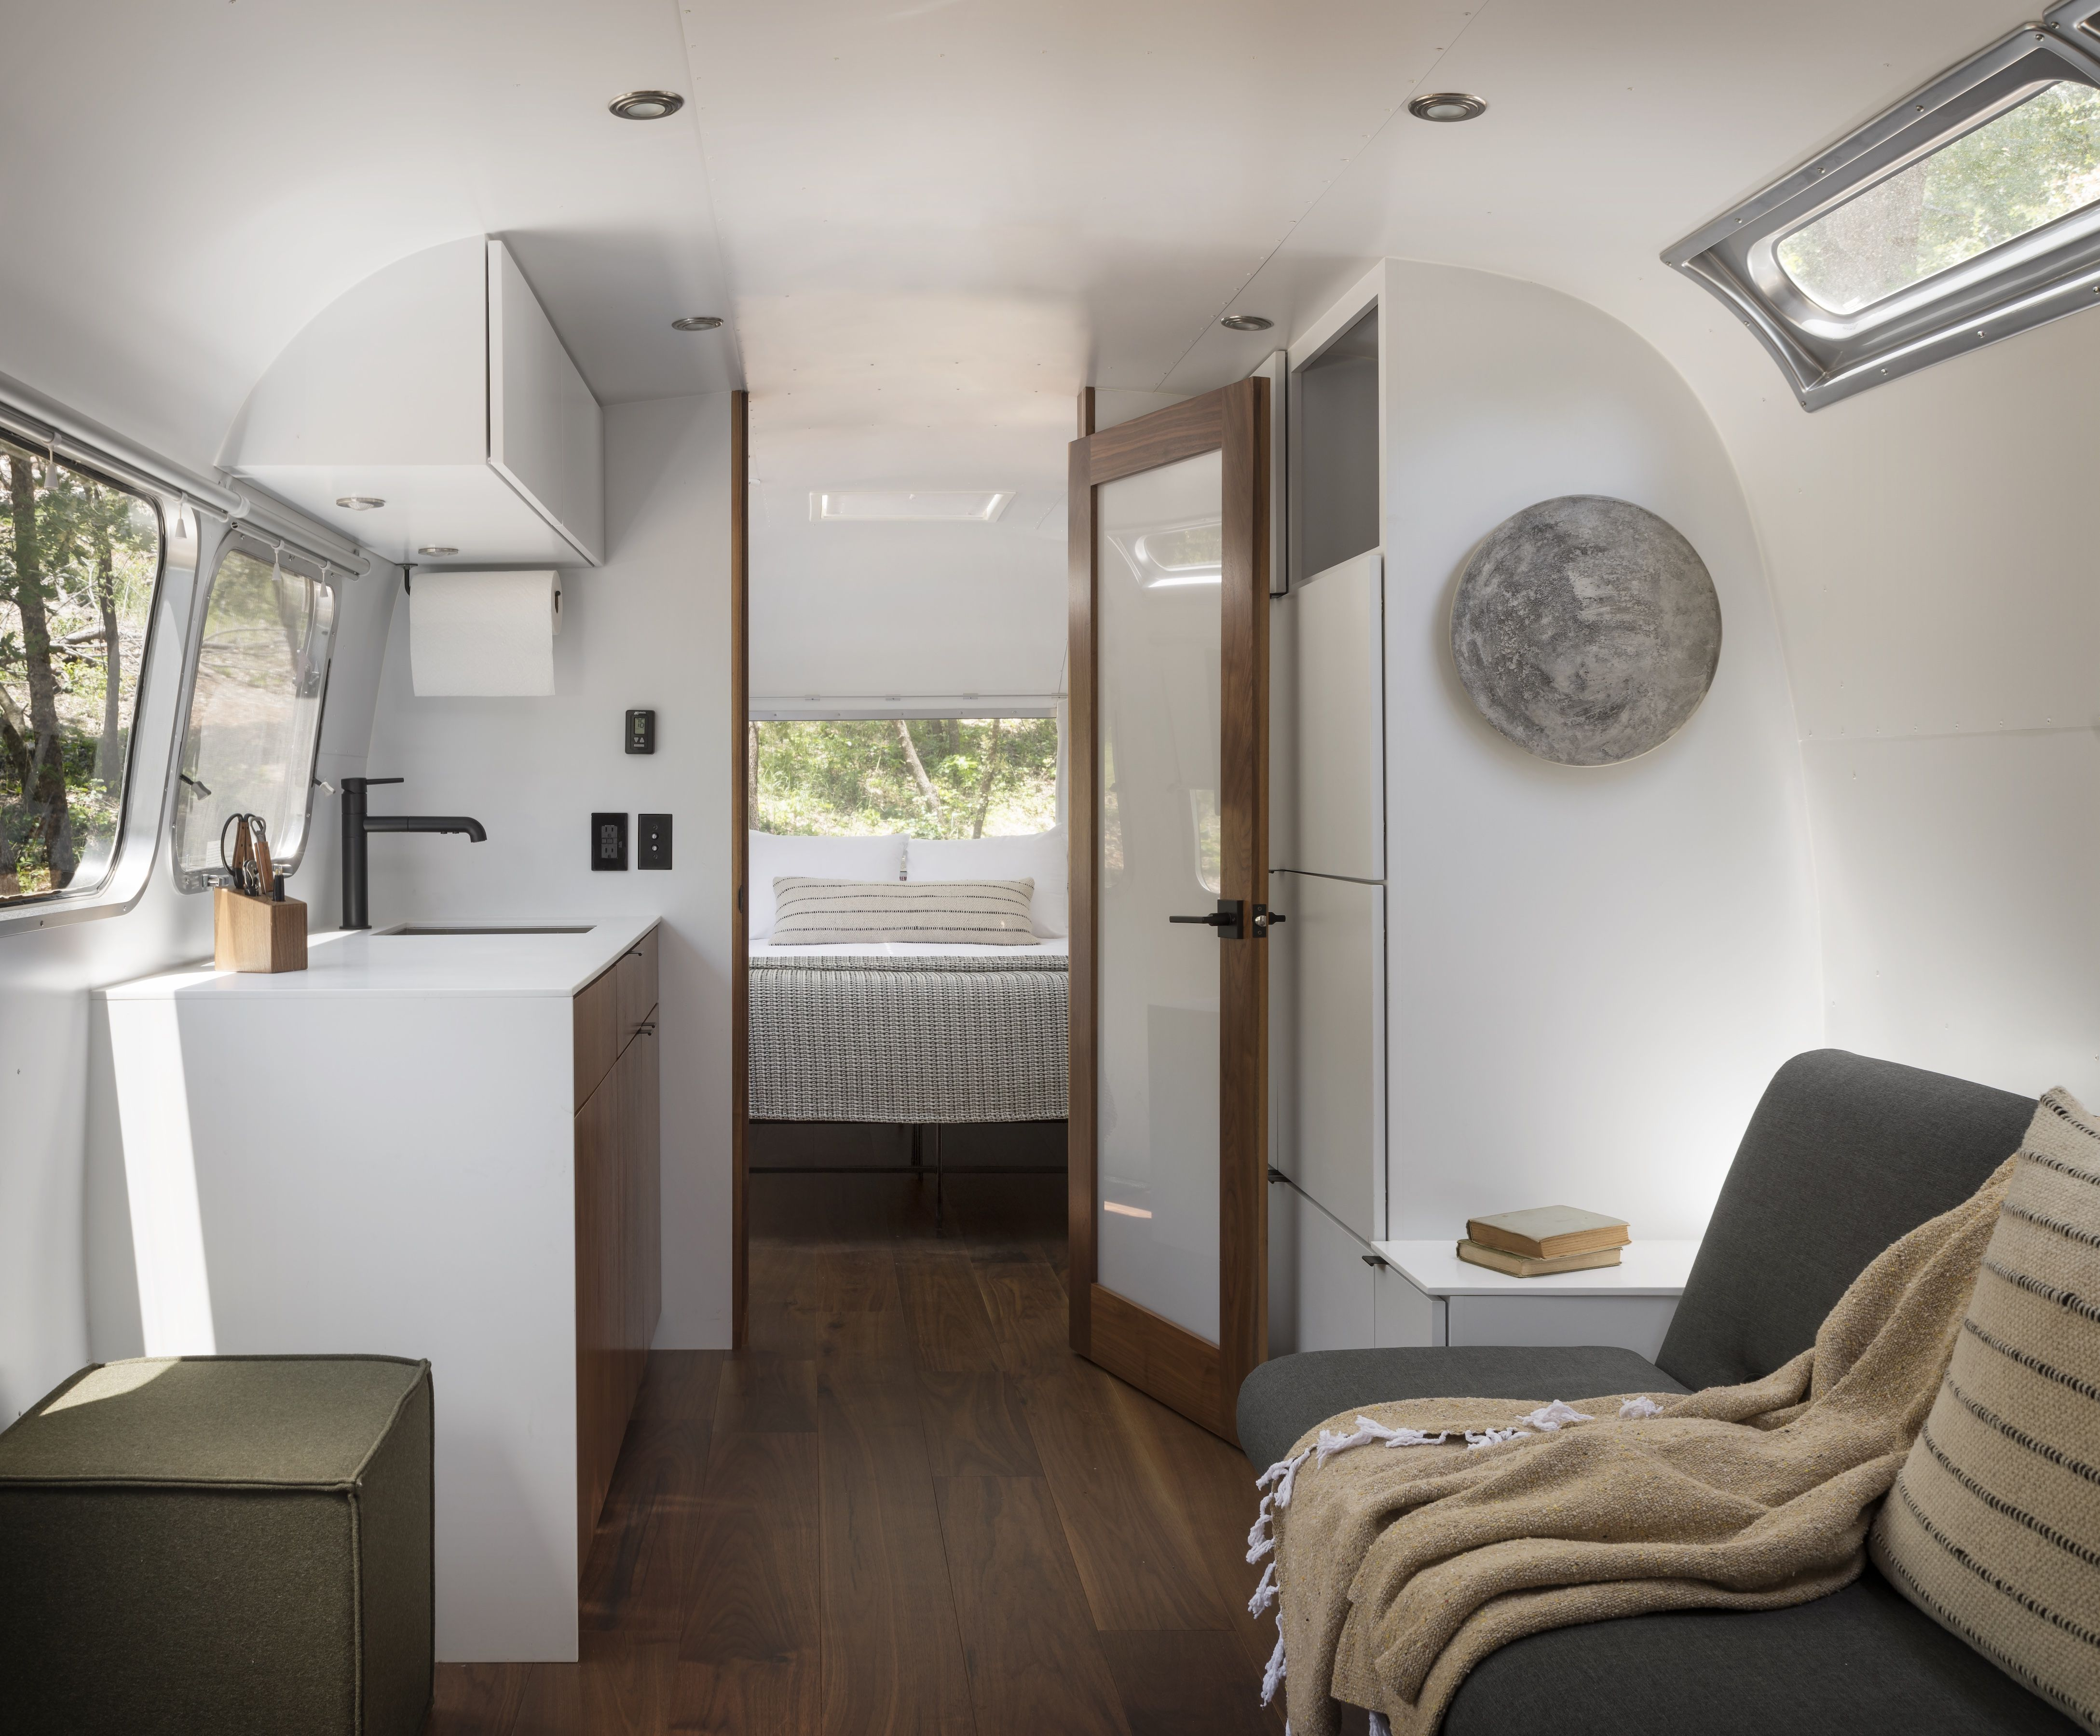 Yosemite Glamping In Airstreams And Canvas Tents Glamping Site Upscale Decor Lounge Areas